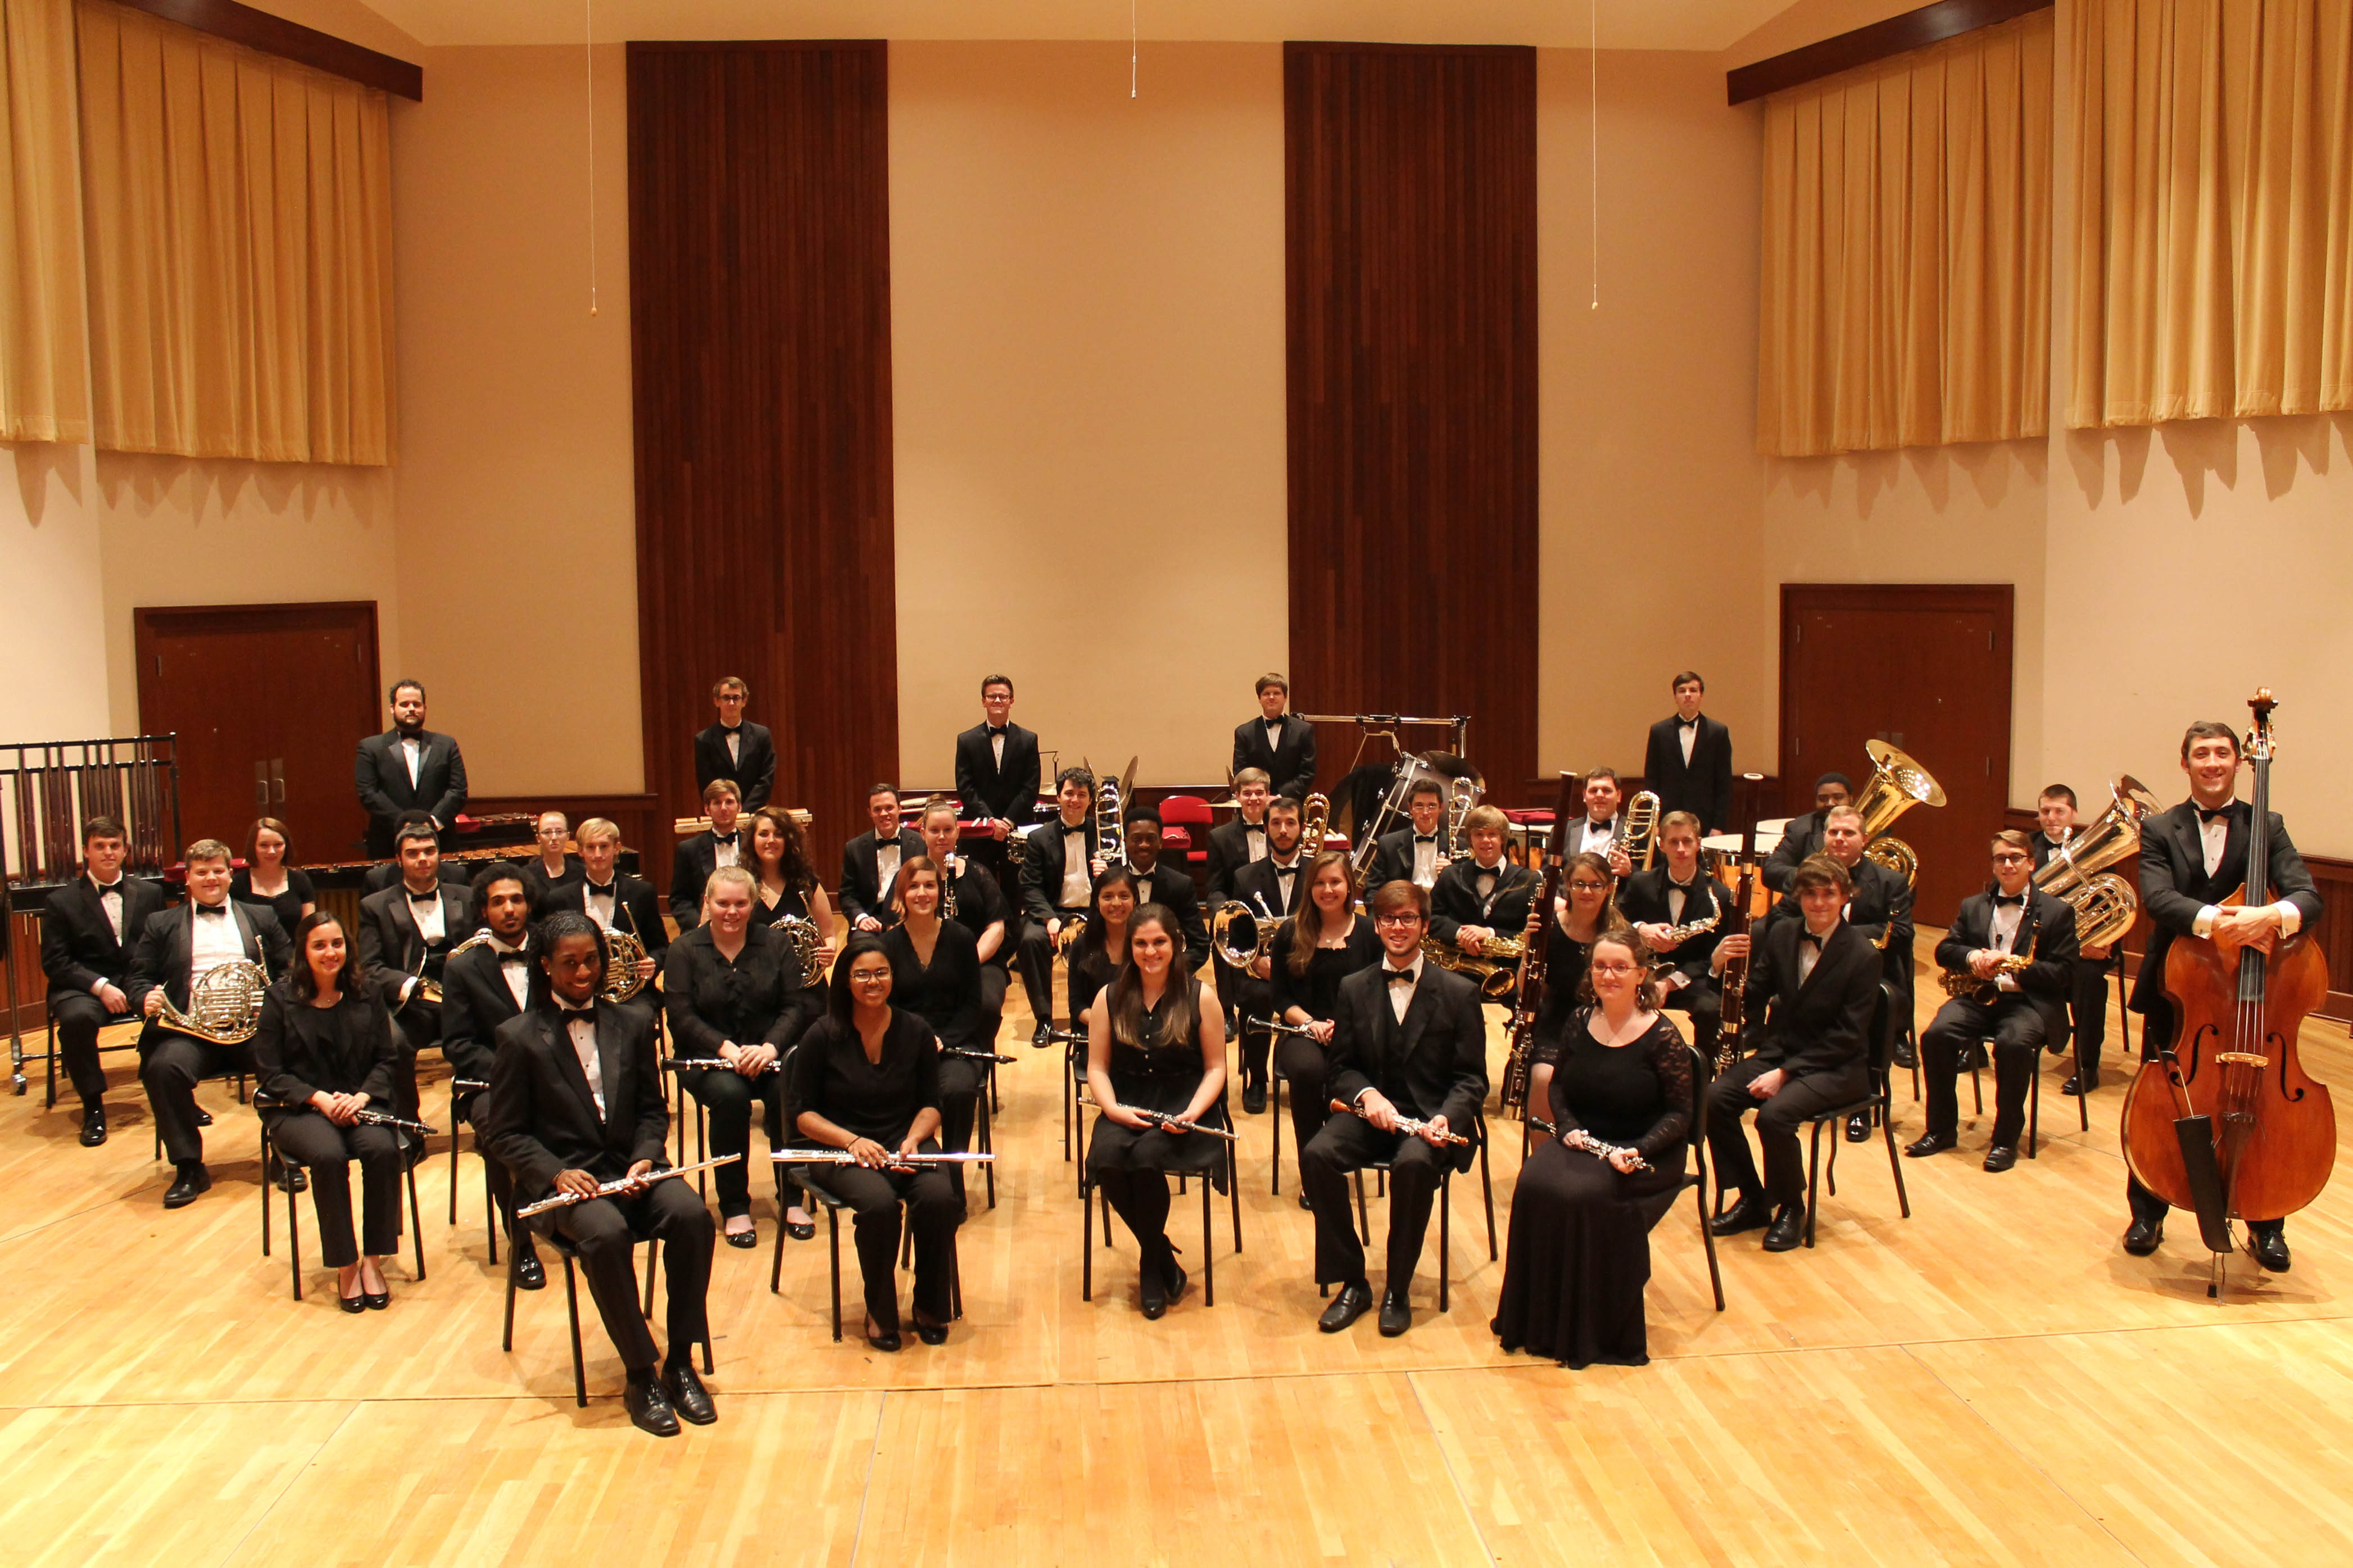 read story, USA Wind Ensemble Concert for Feb. 23 is Rescheduled for Feb. 26 at 11:15 a.m.